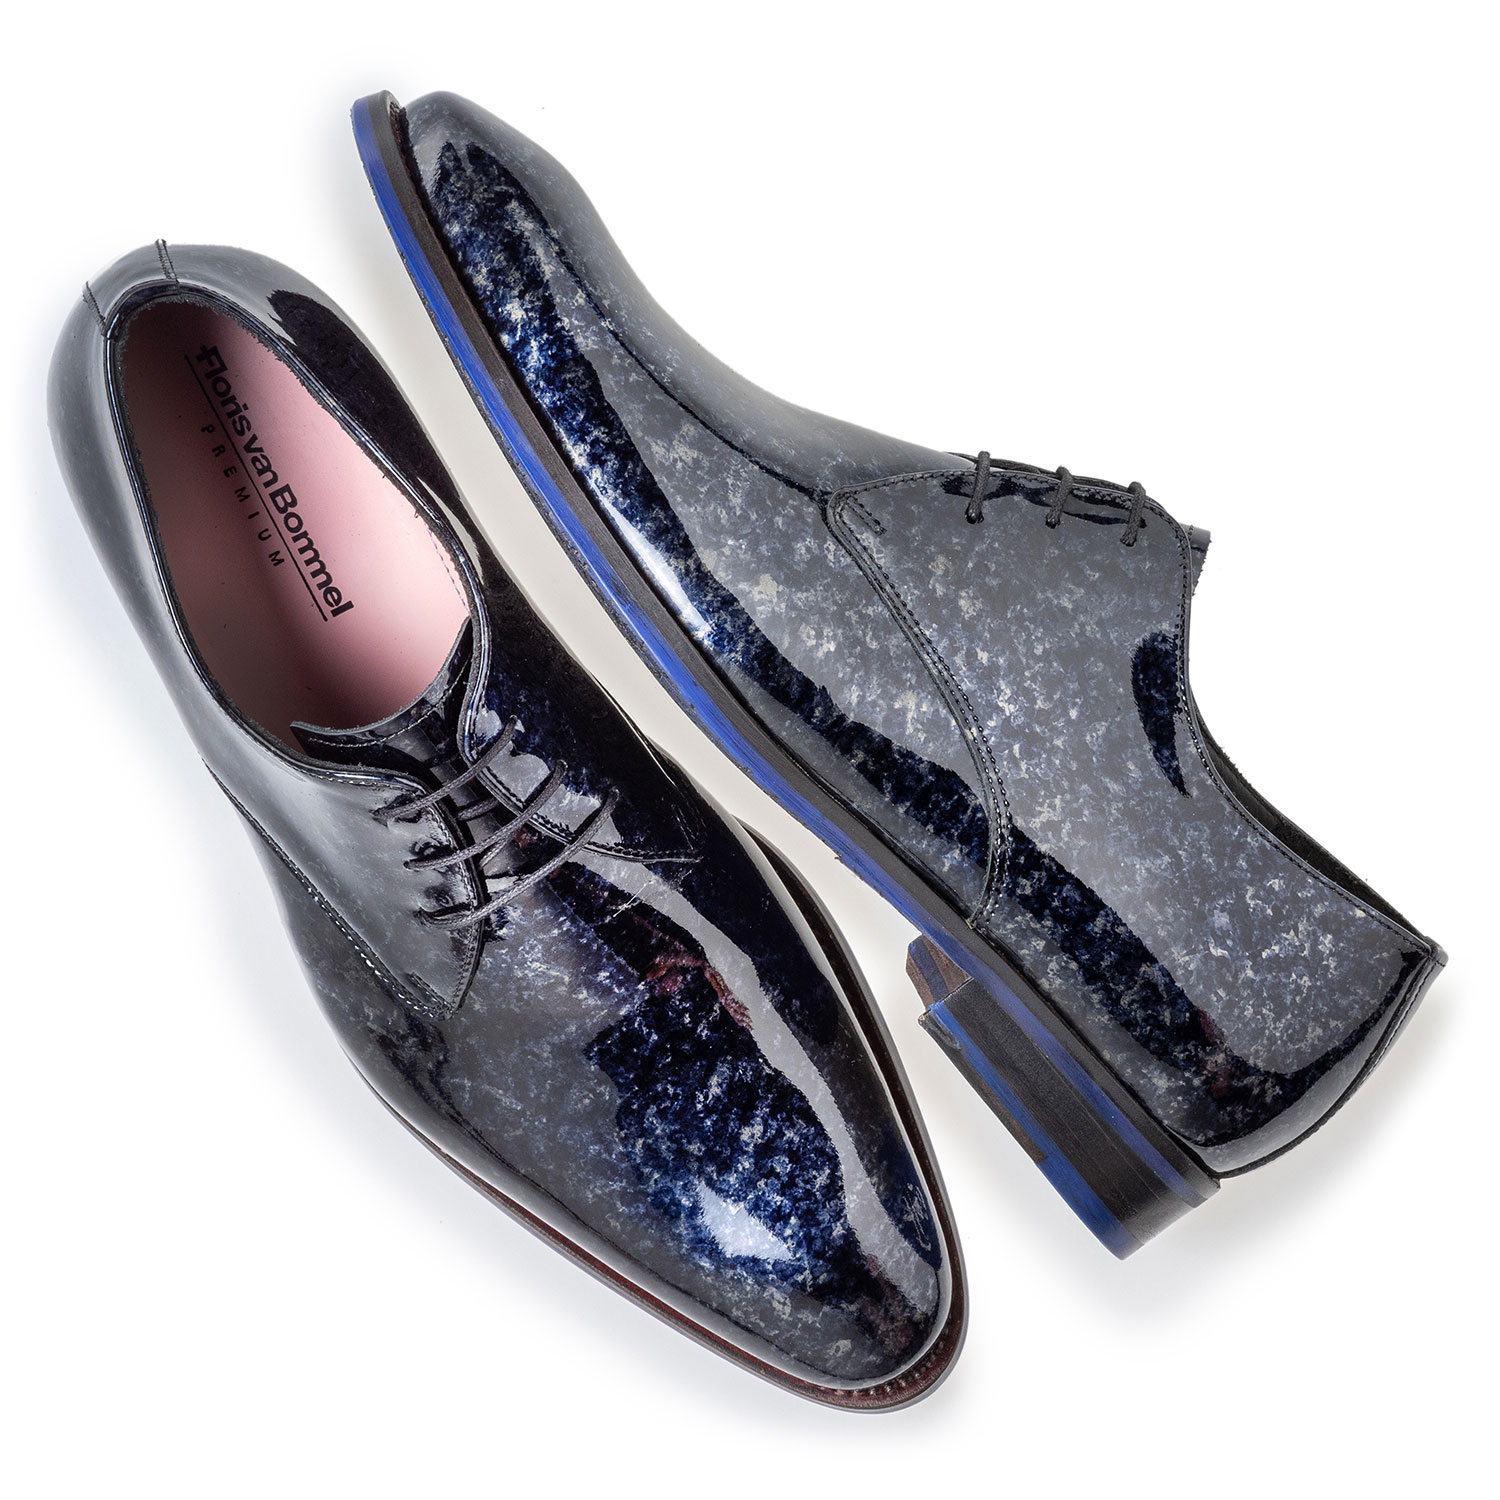 18224/03 - Lace shoe blue patent leather